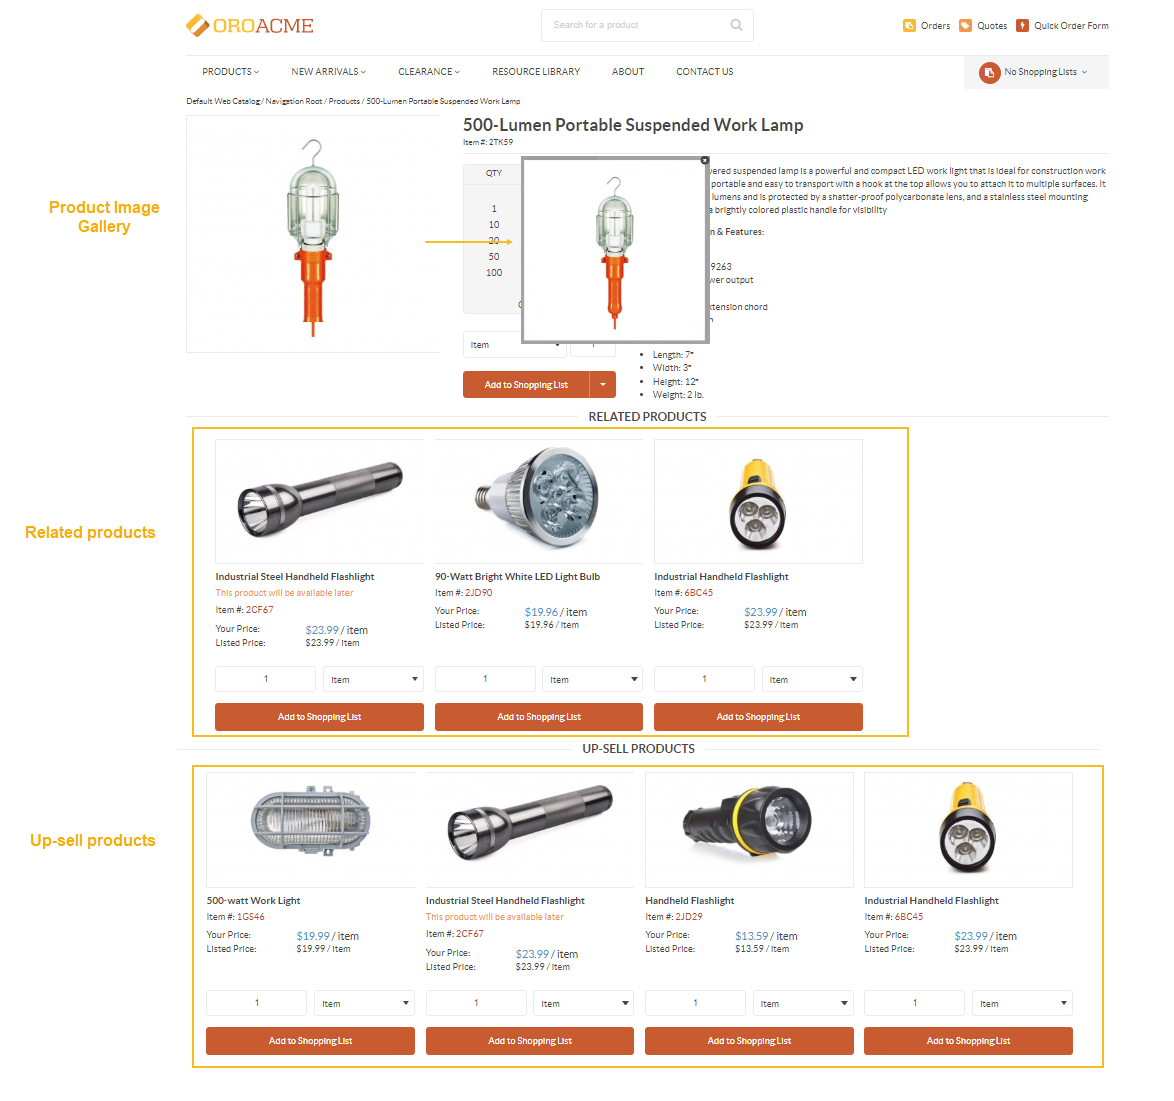 Visual representation of products on the product details page